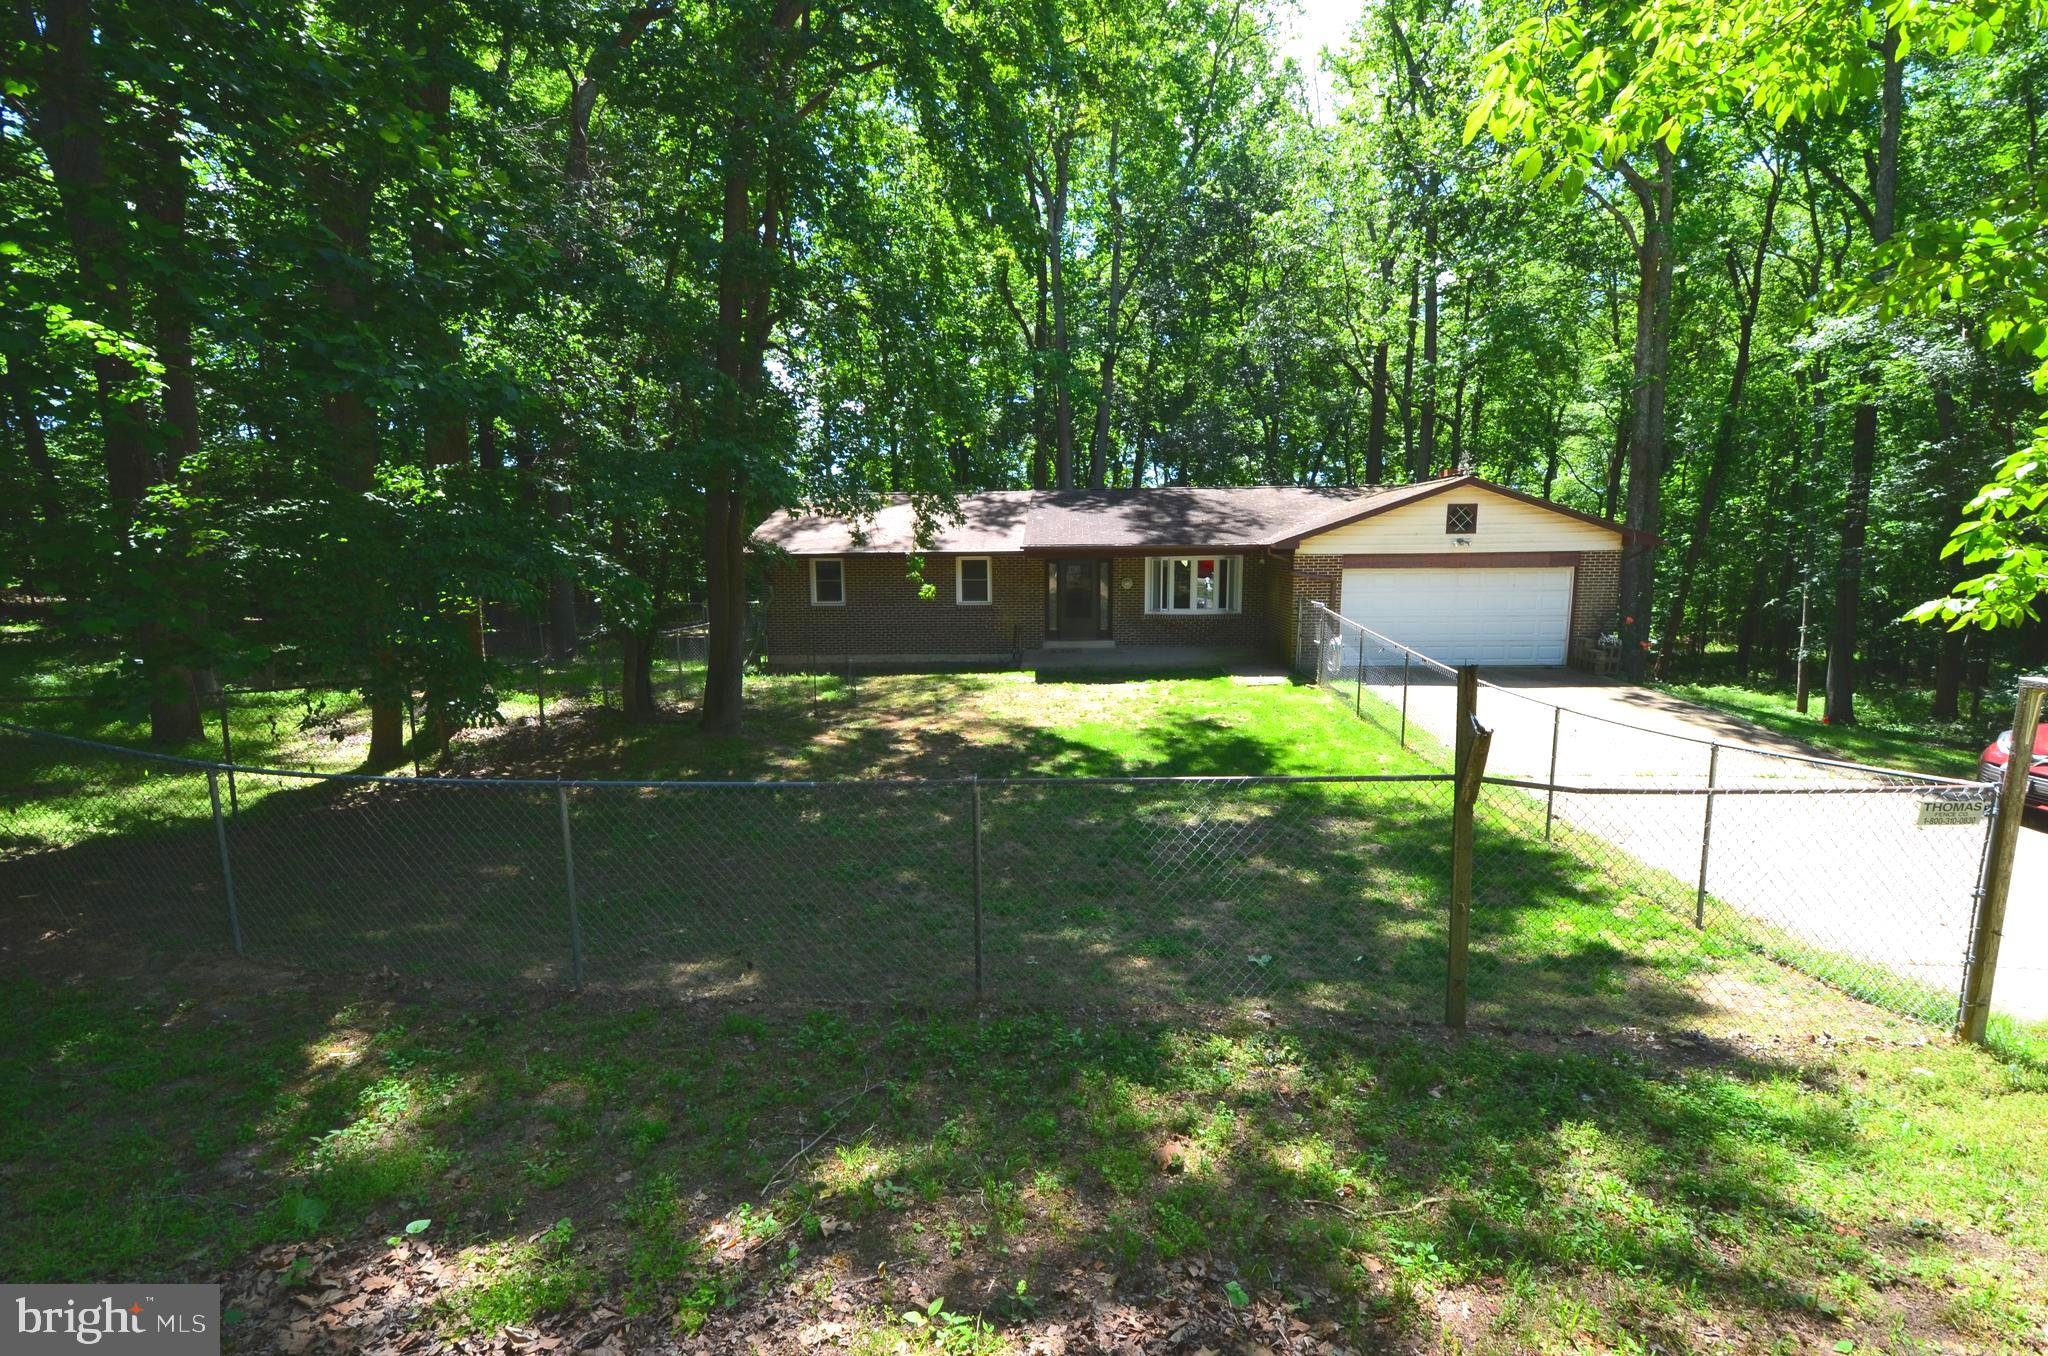 Great opportunity to own a home on almost 3 acres. Brand new well, septic upgraded in 2019, open flo